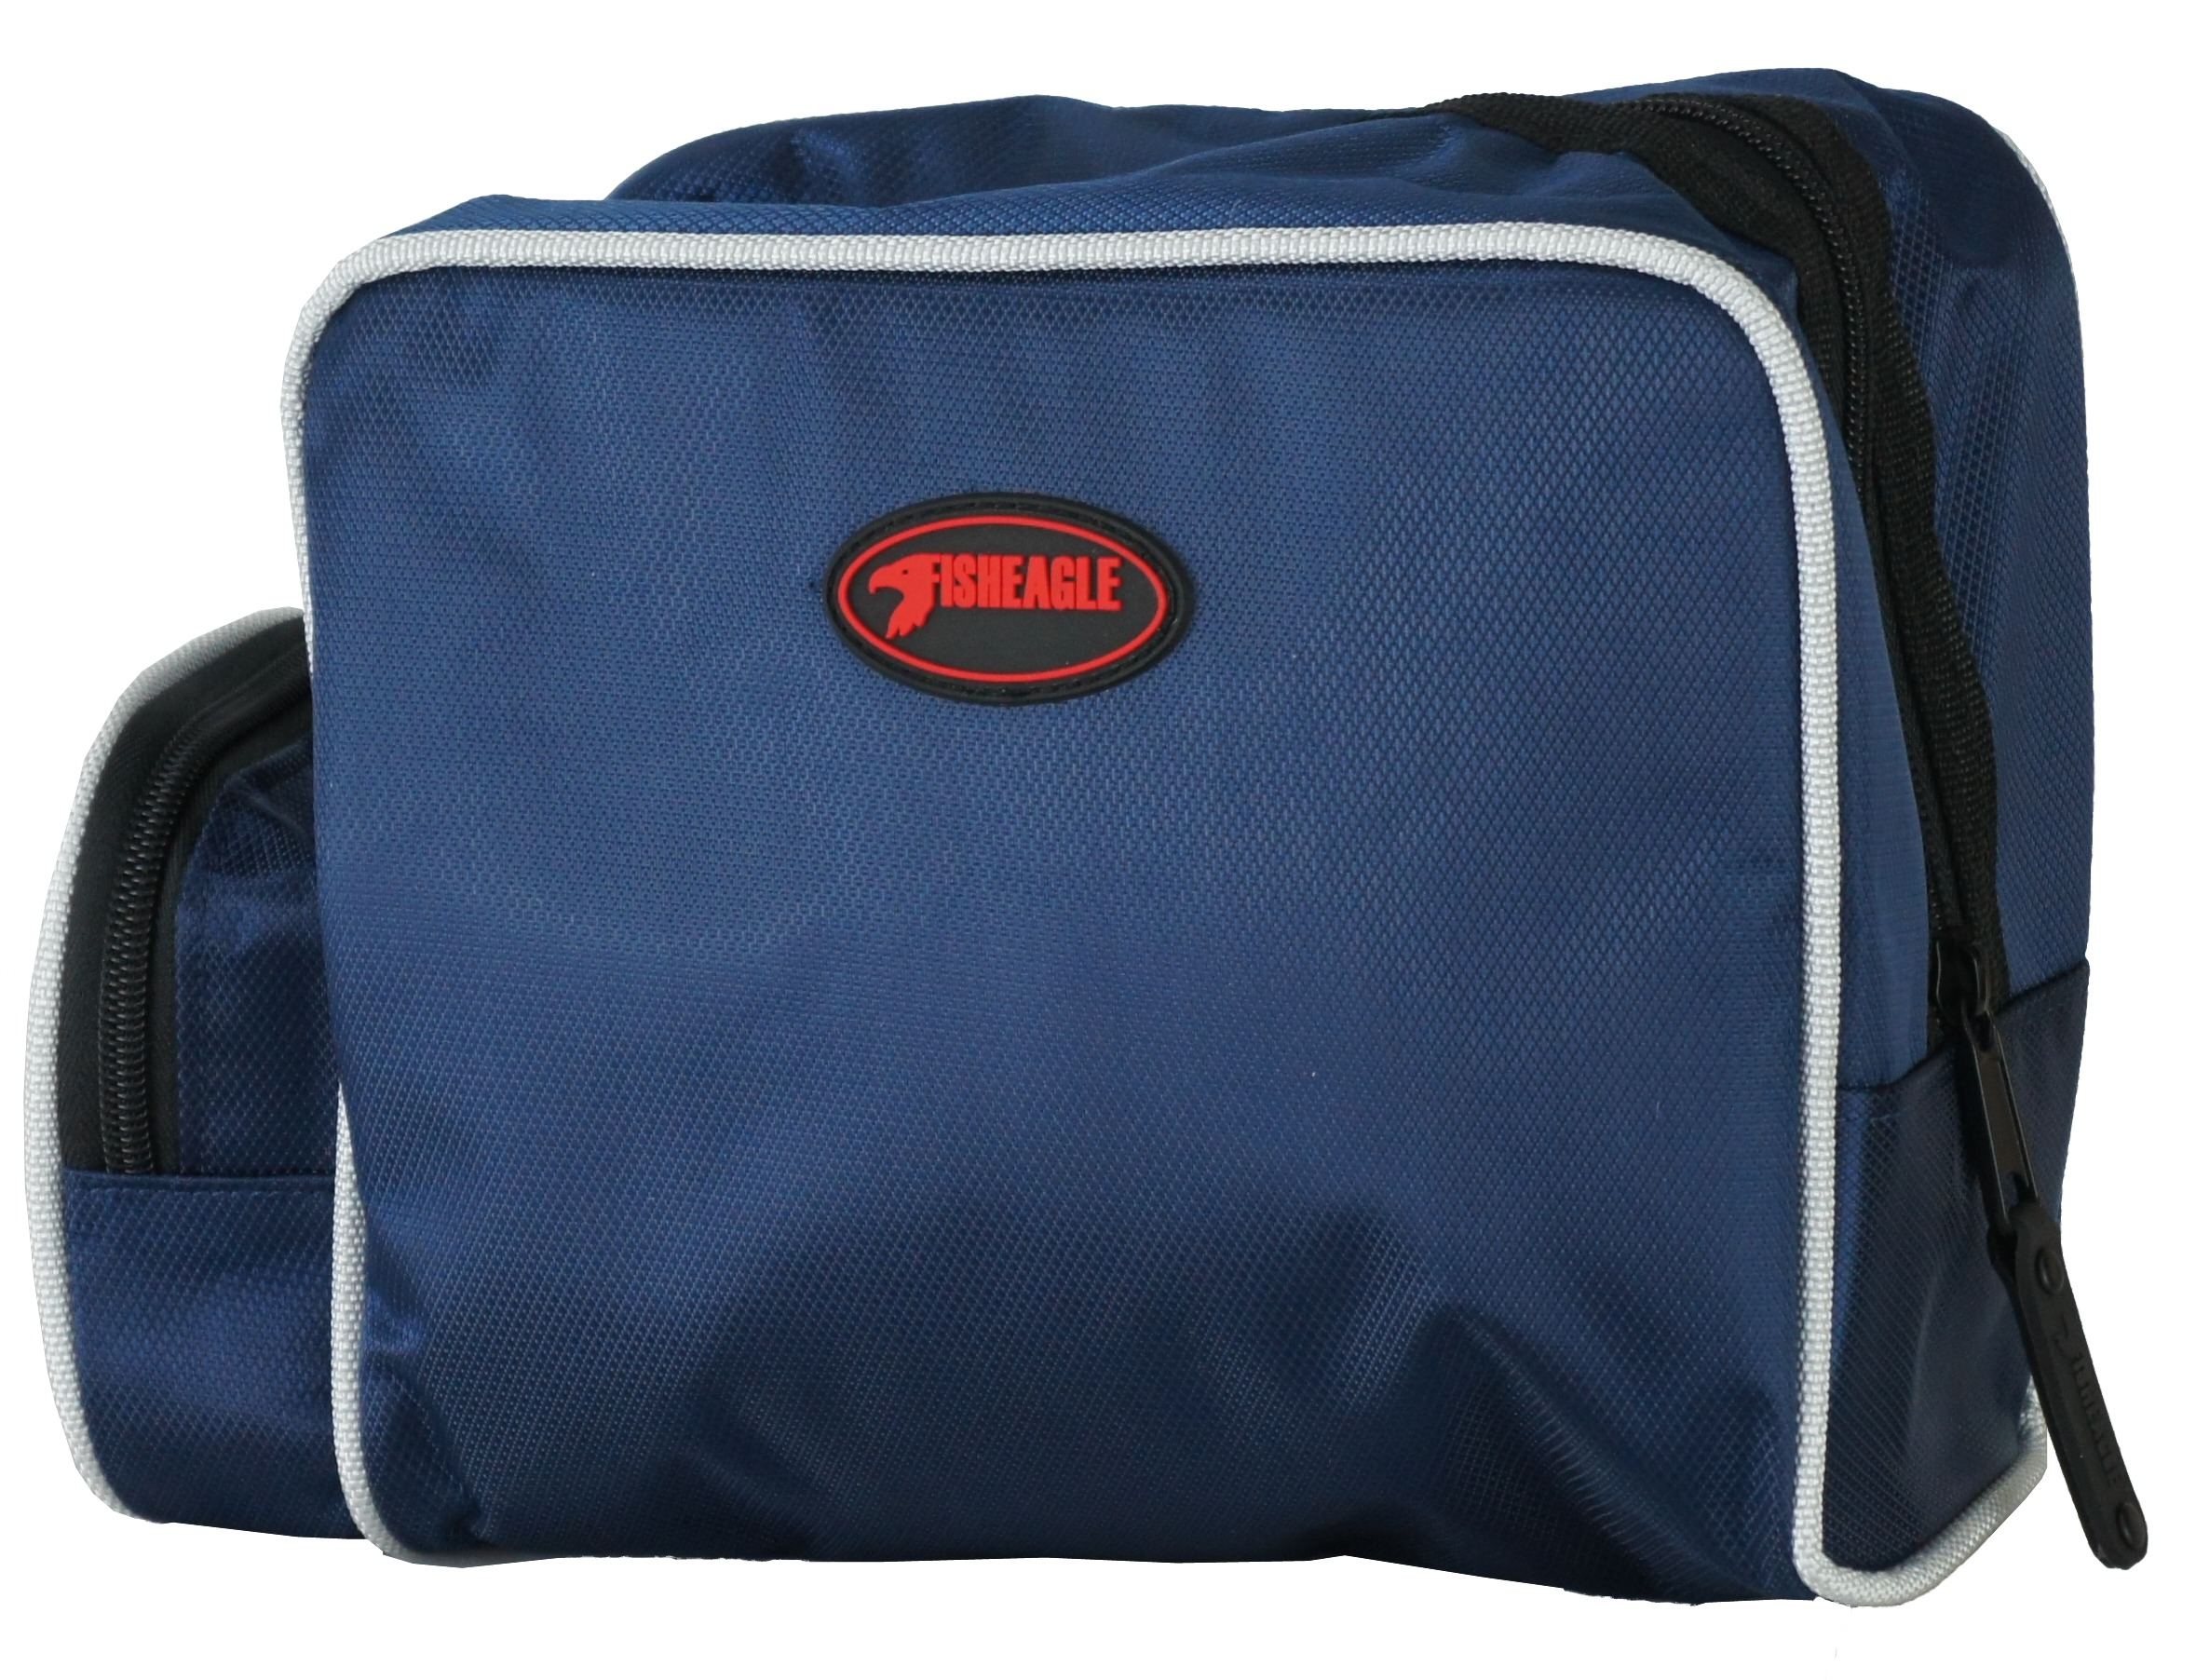 Fisheagle fixed spool reel bag glasgow angling centre for Fishing reel bag